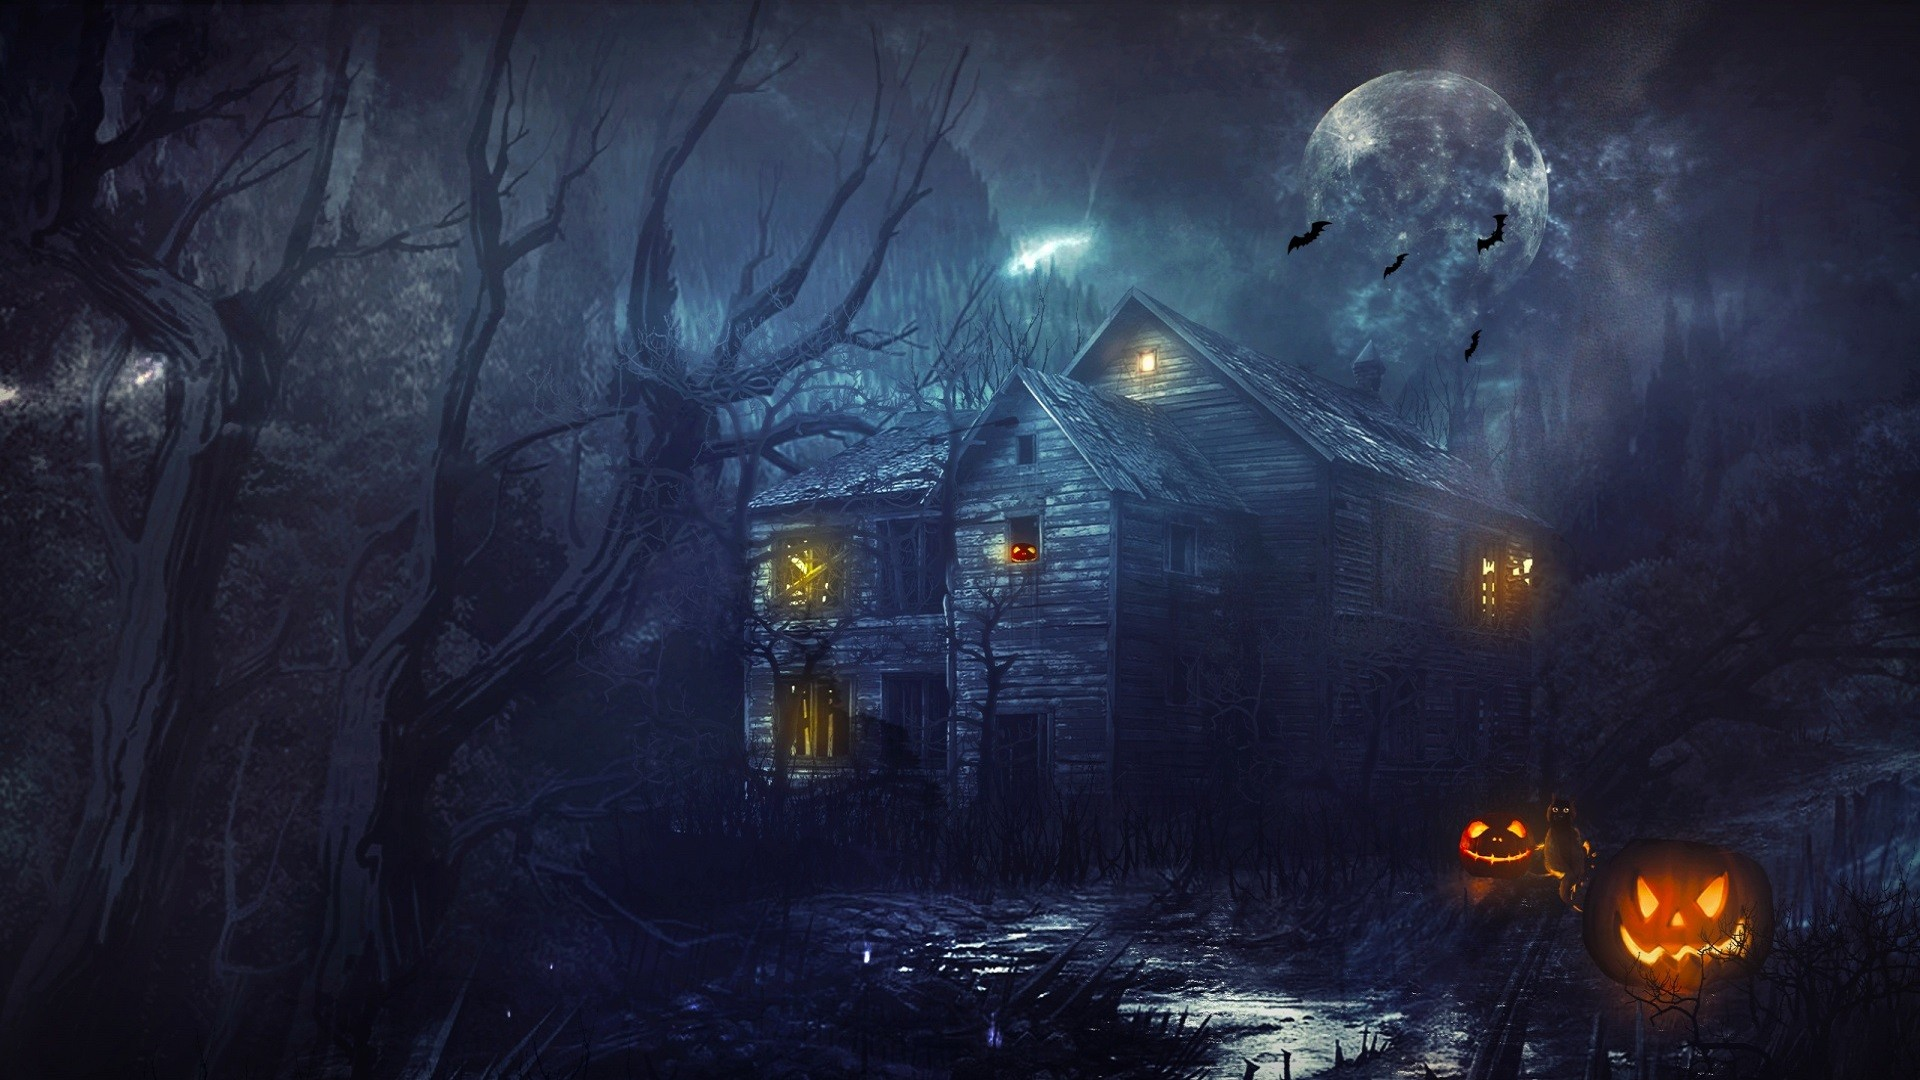 Must see Wallpaper Halloween Smartphone - 173419-halloween-desktop-backgrounds-1920x1080-smartphone  Graphic_501382.jpg